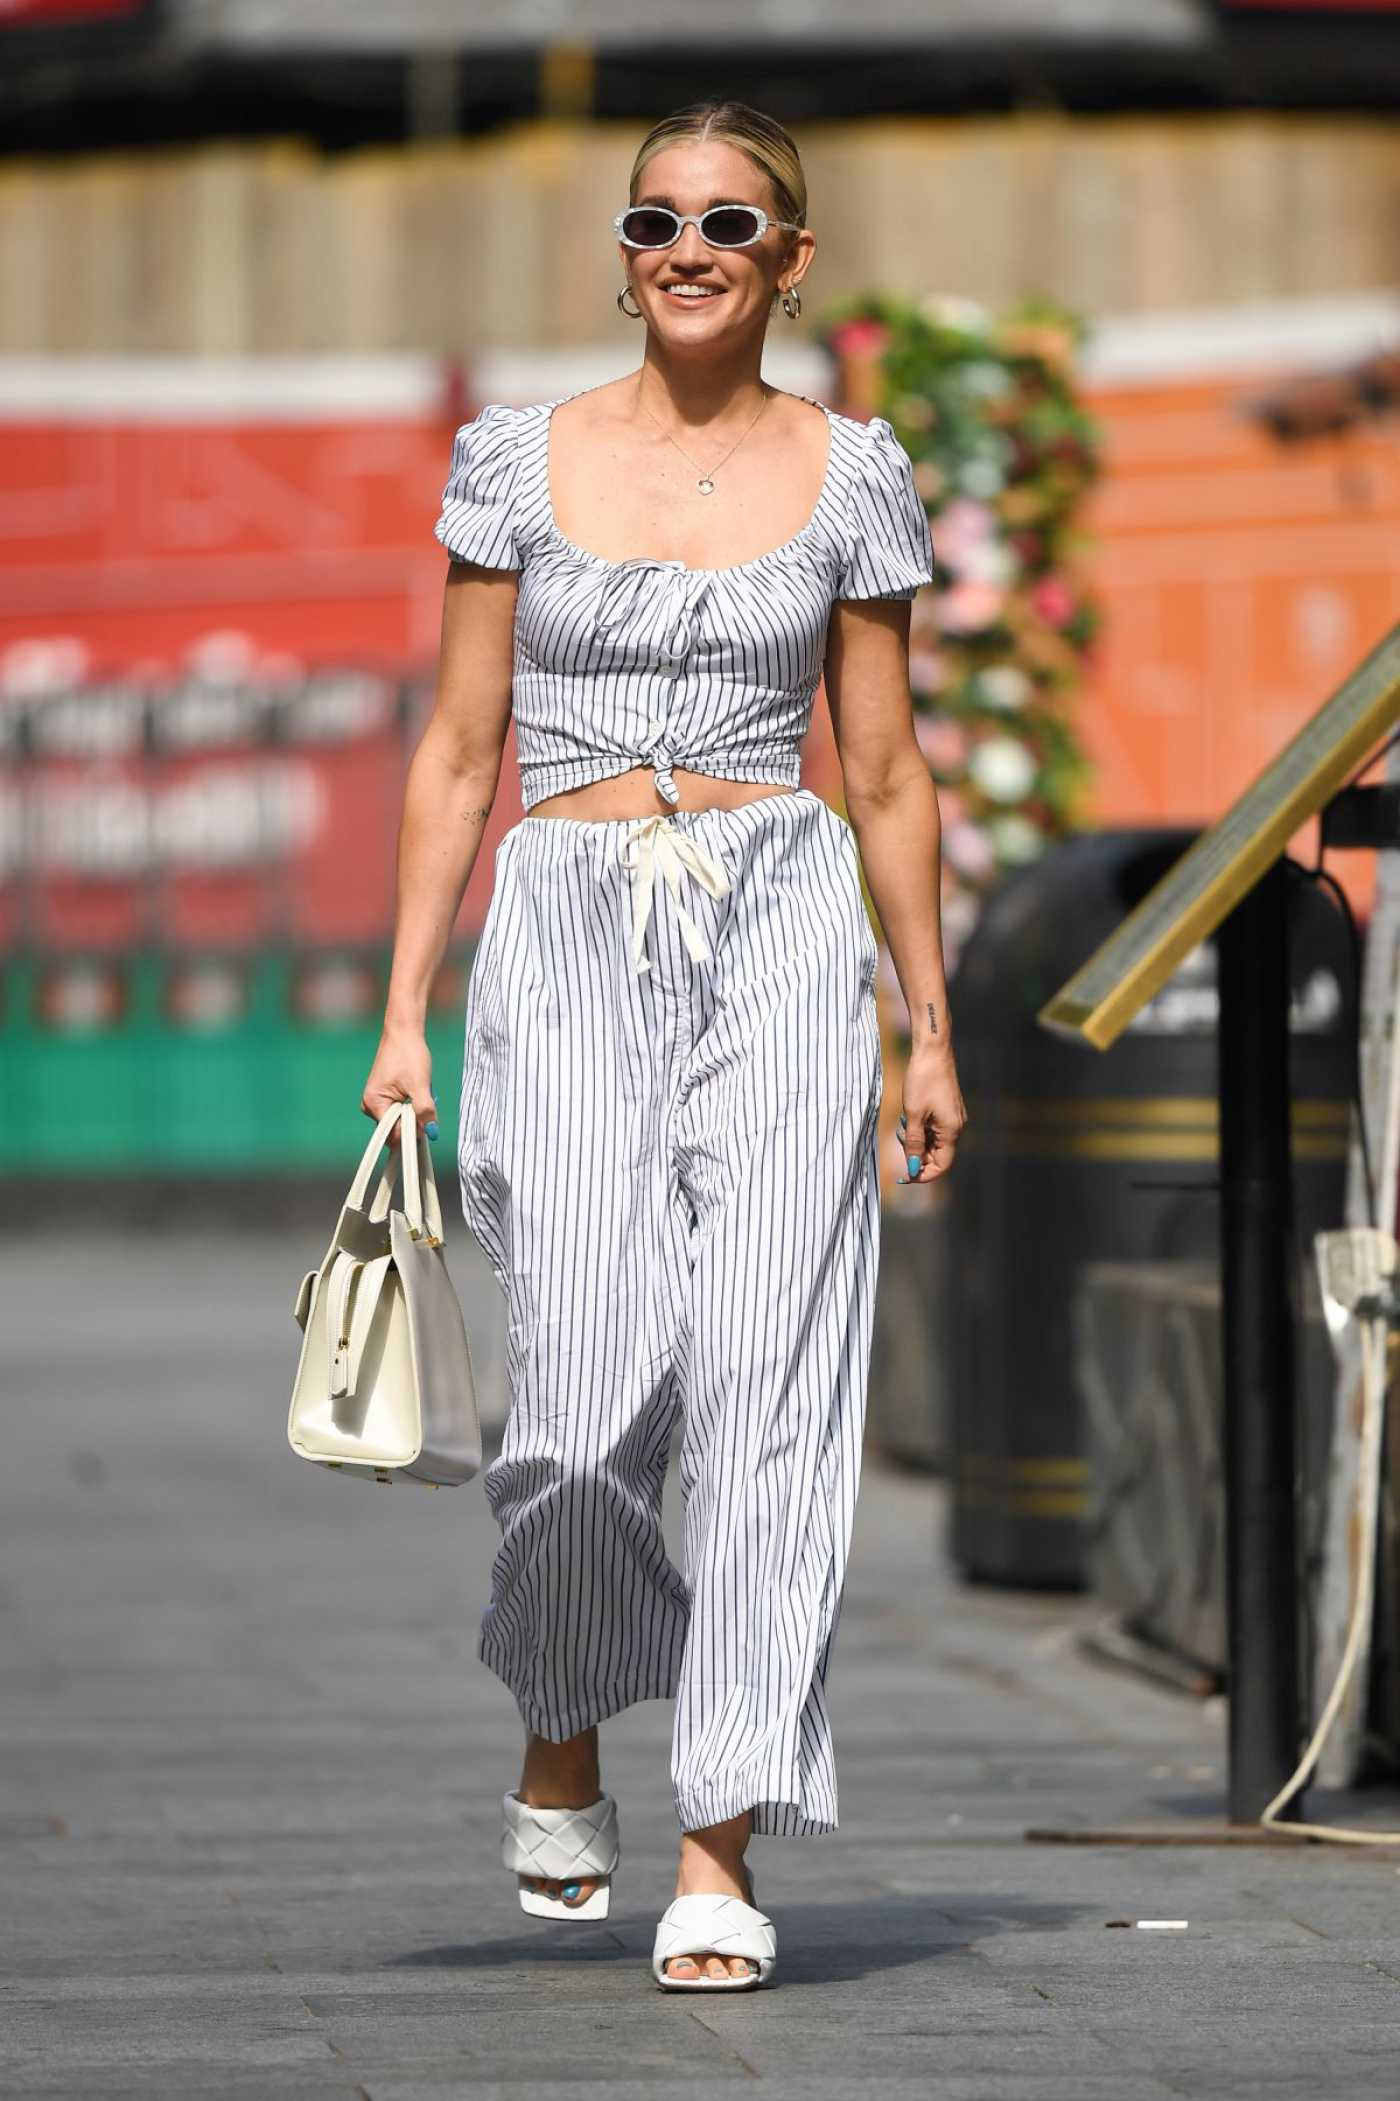 Ashley Roberts in a Striped Summer Suit Arrives at the Global Radio Studios in London 07/20/2021